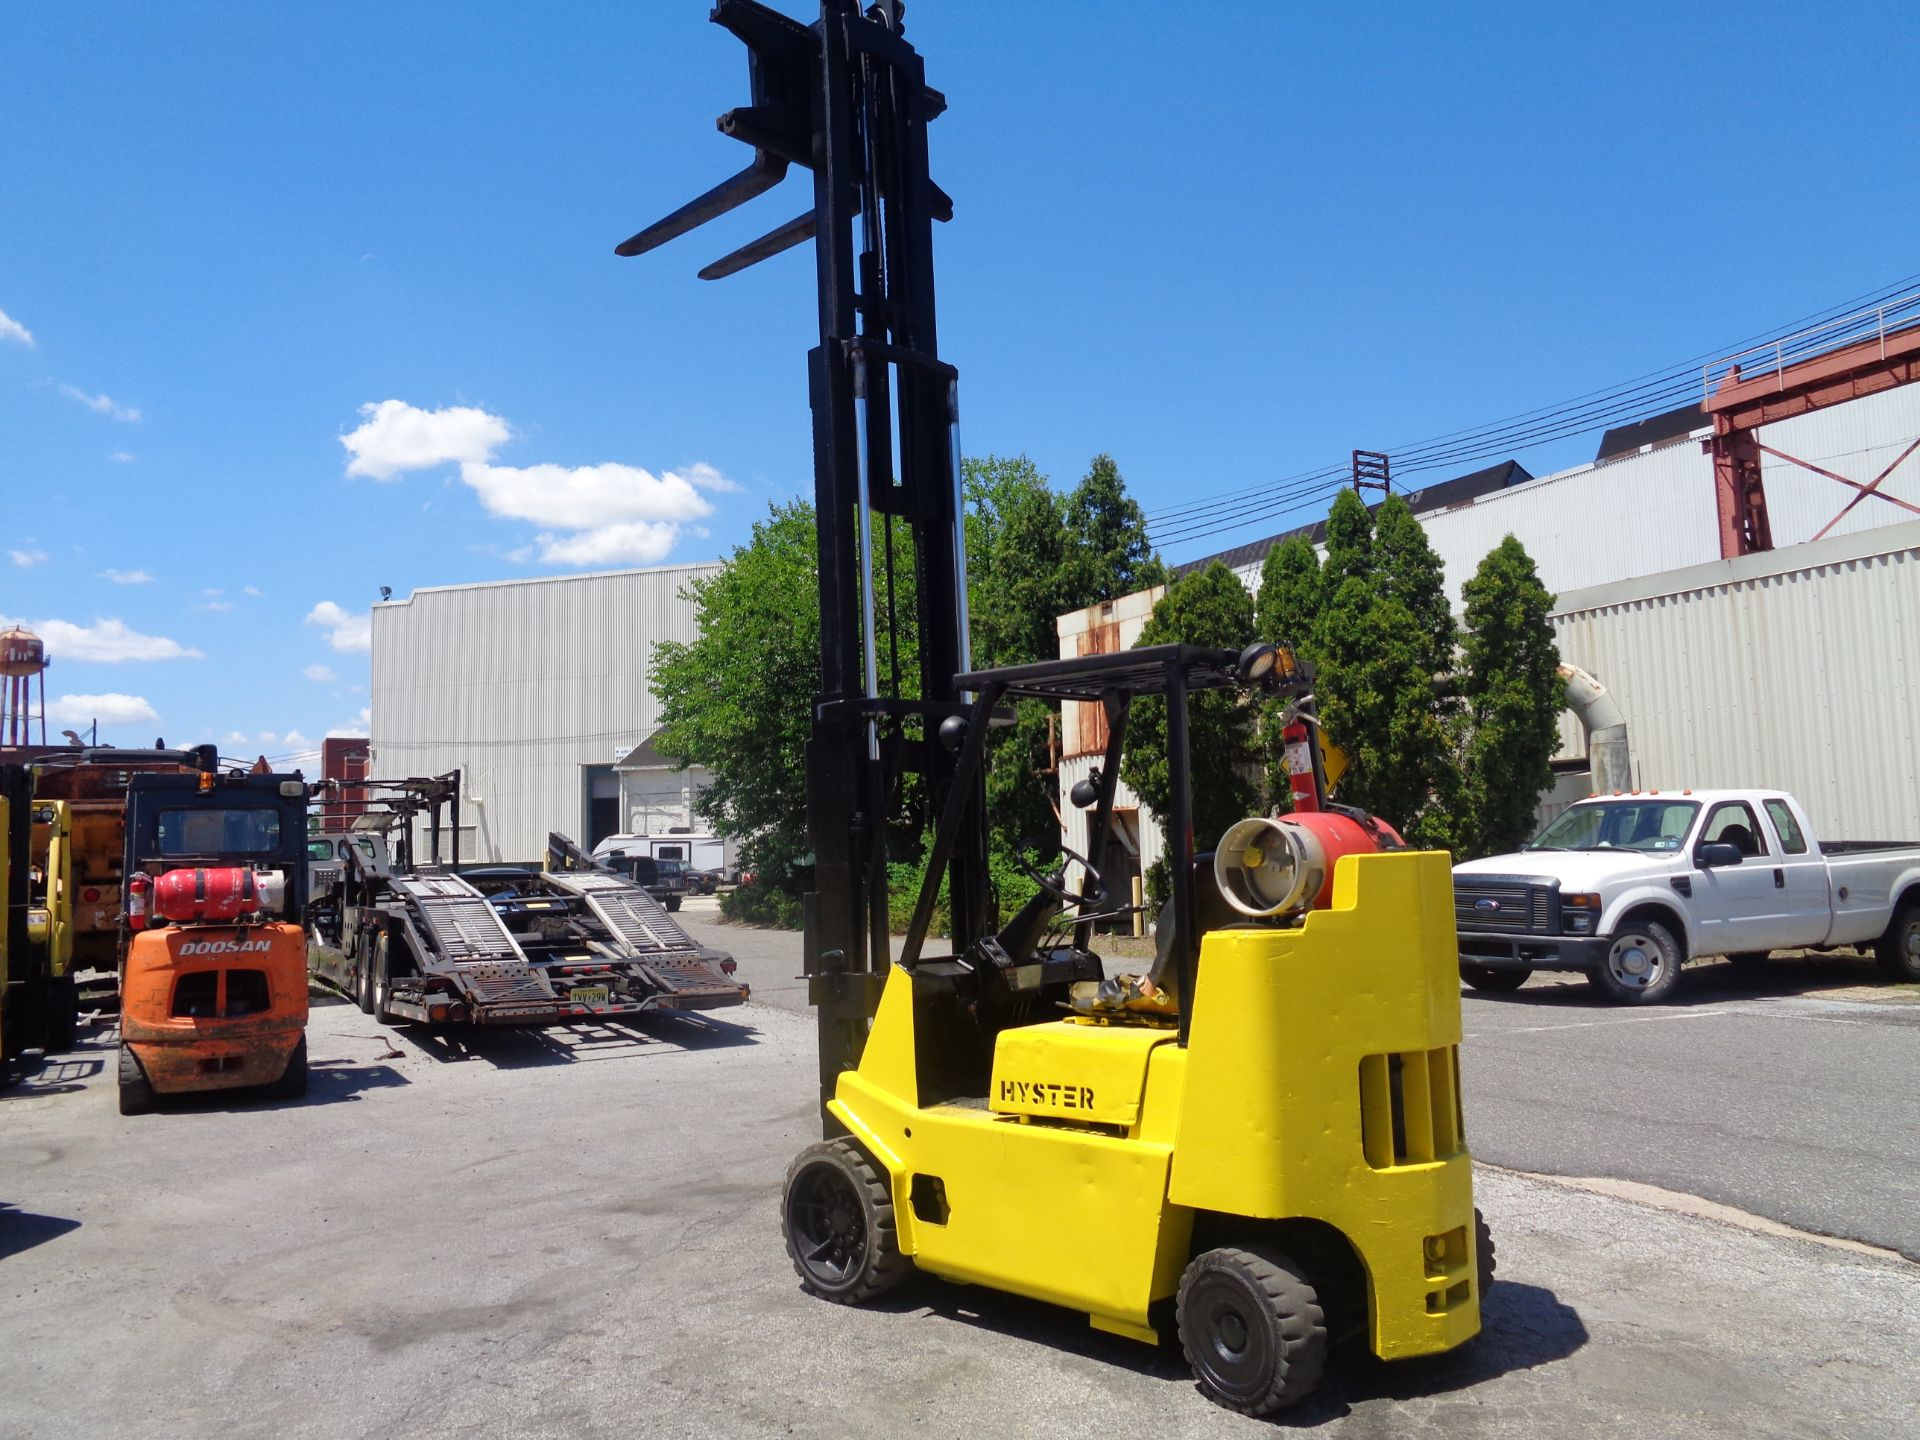 Hyster S80XL 8,000 lbs Forklift - Image 5 of 13